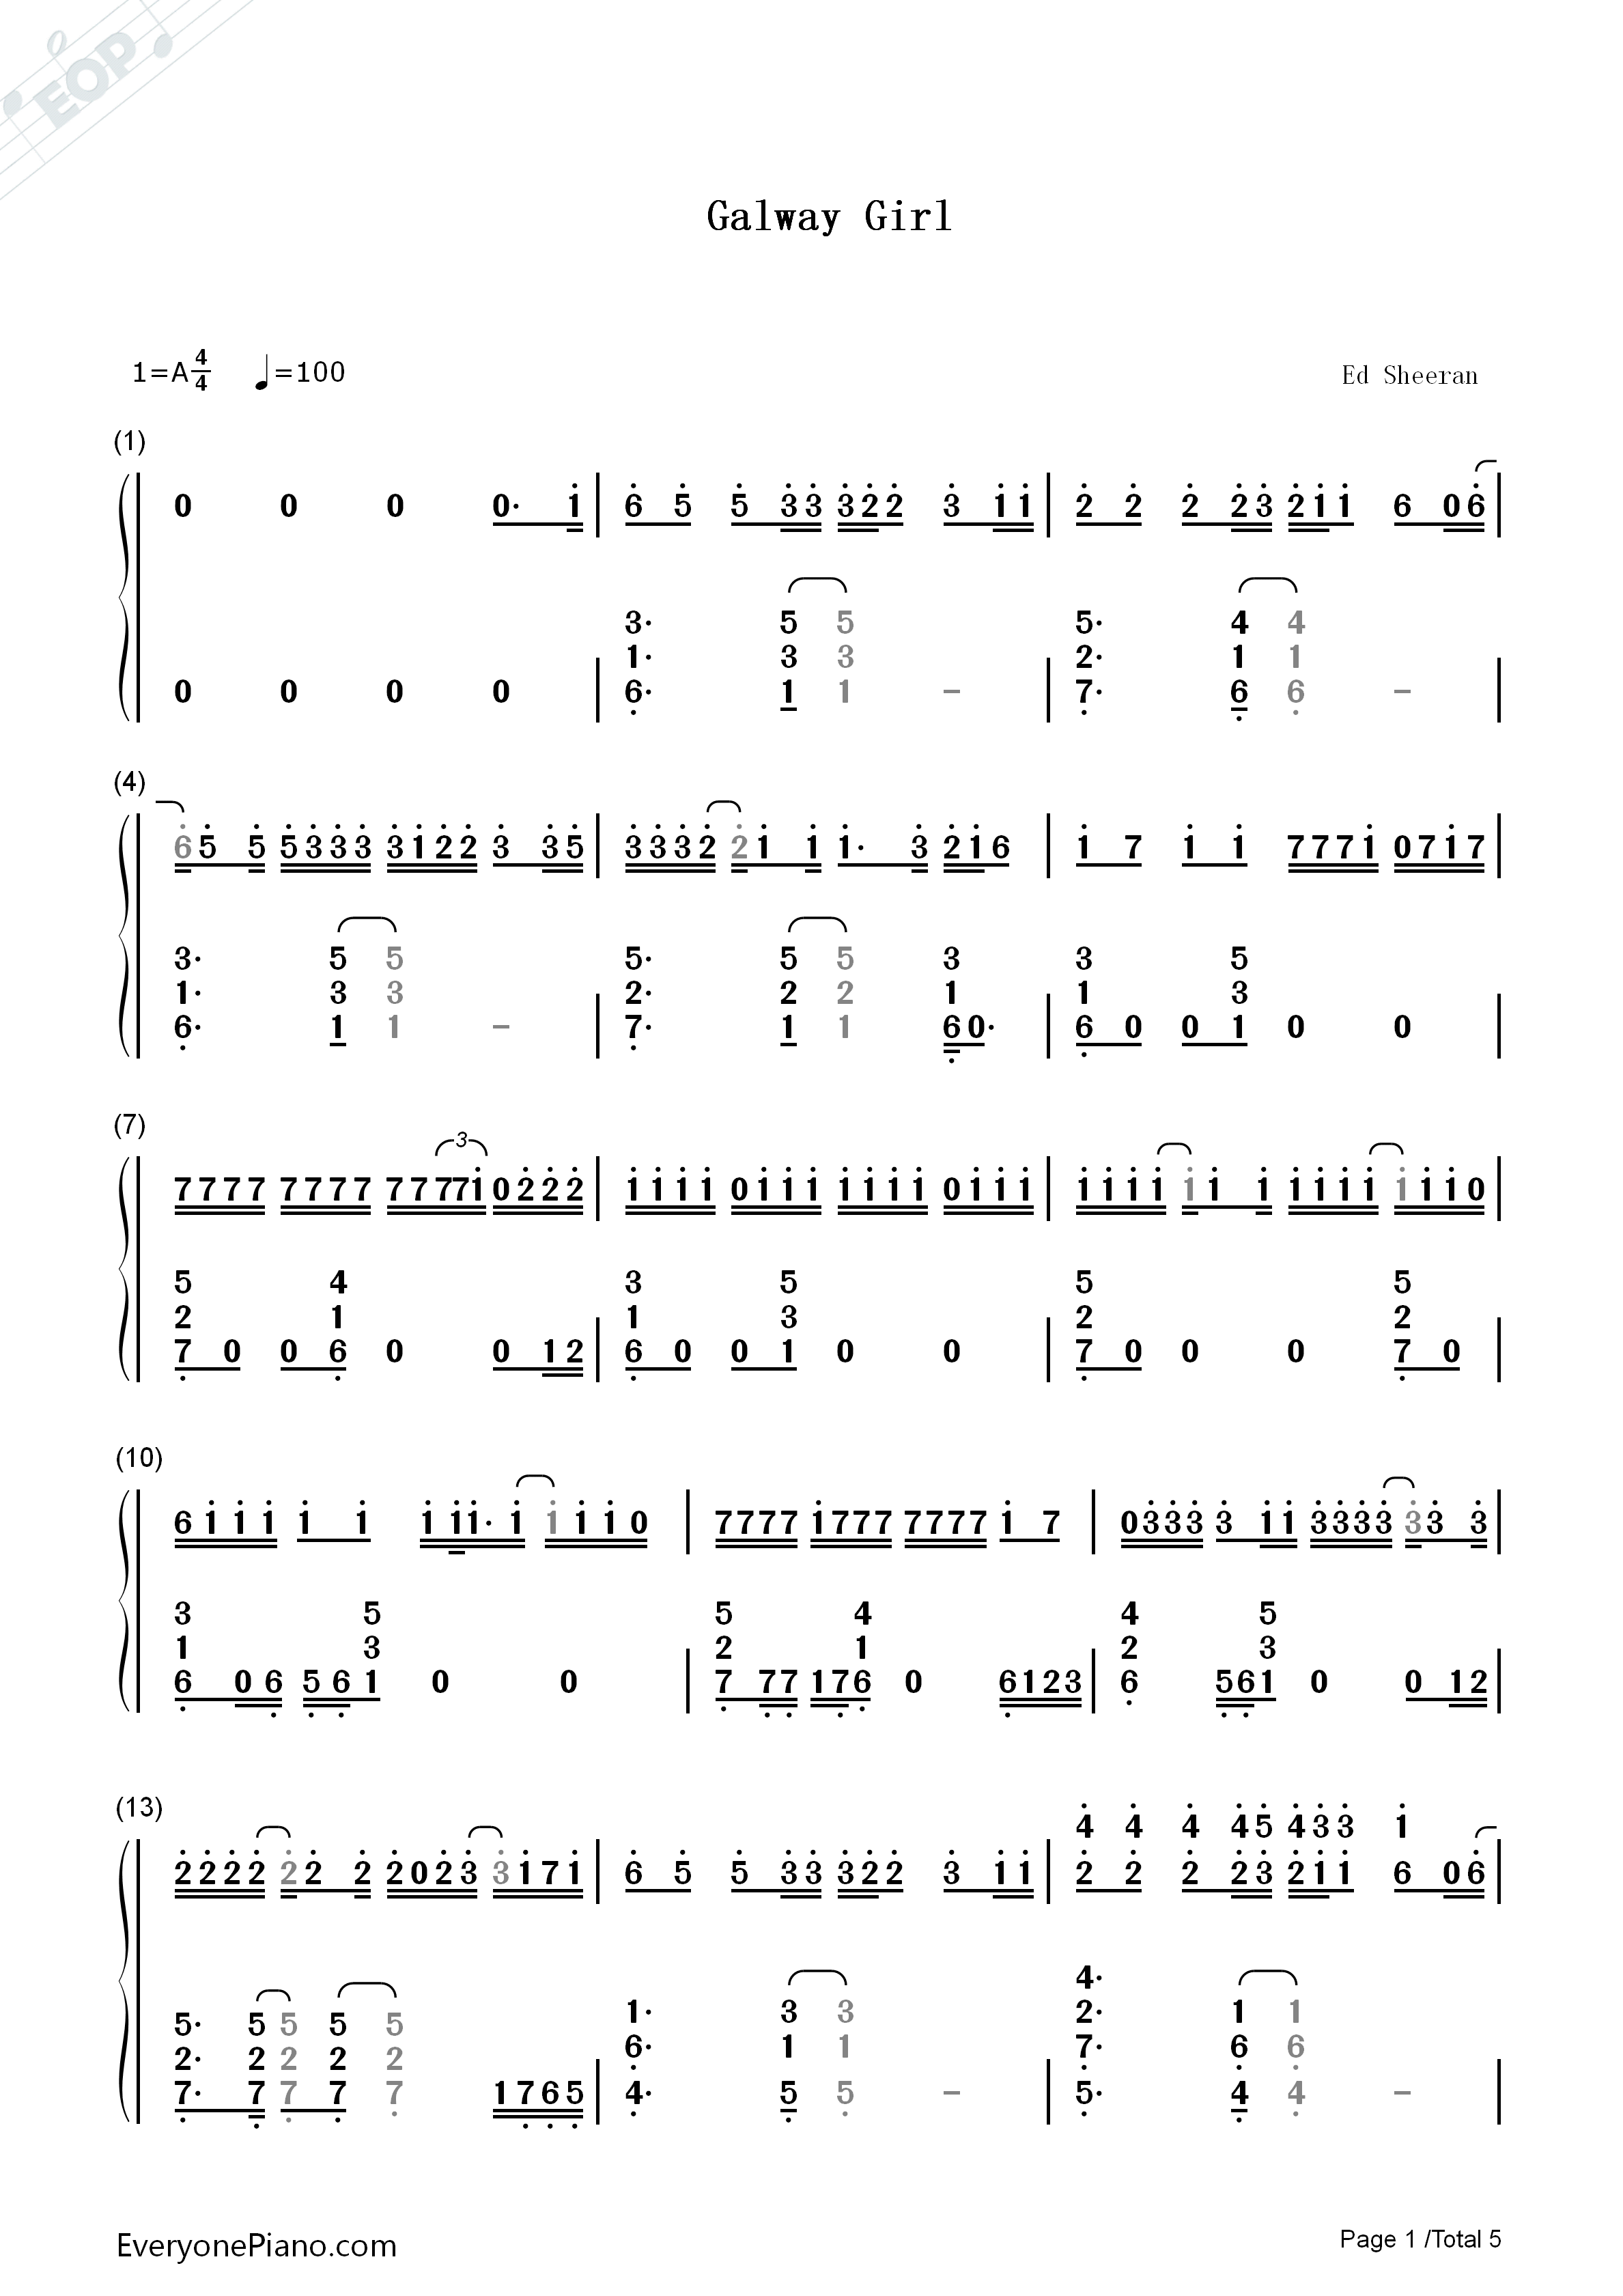 Galway girl ed sheeran numbered musical notation preview 1 free listen now print sheet galway girl ed sheeran numbered musical notation preview 1 hexwebz Images